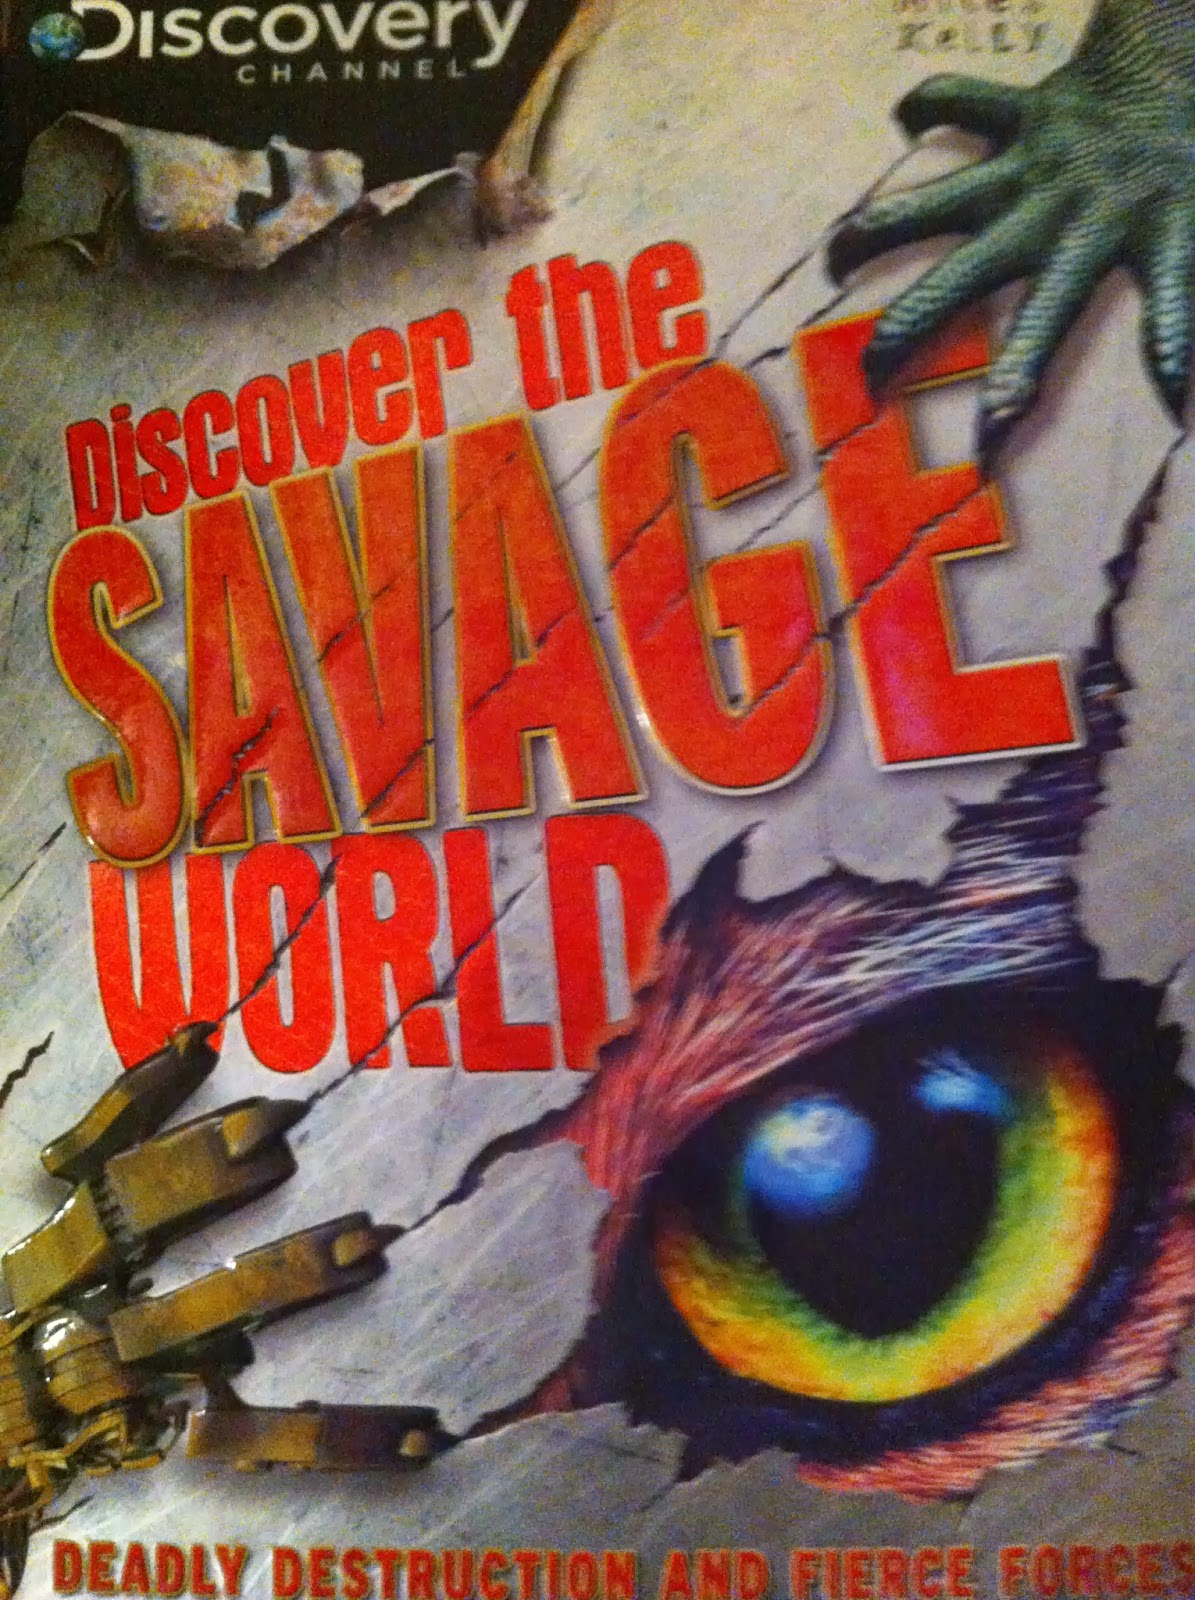 World-Book-Day-Discover-the-Savage-World